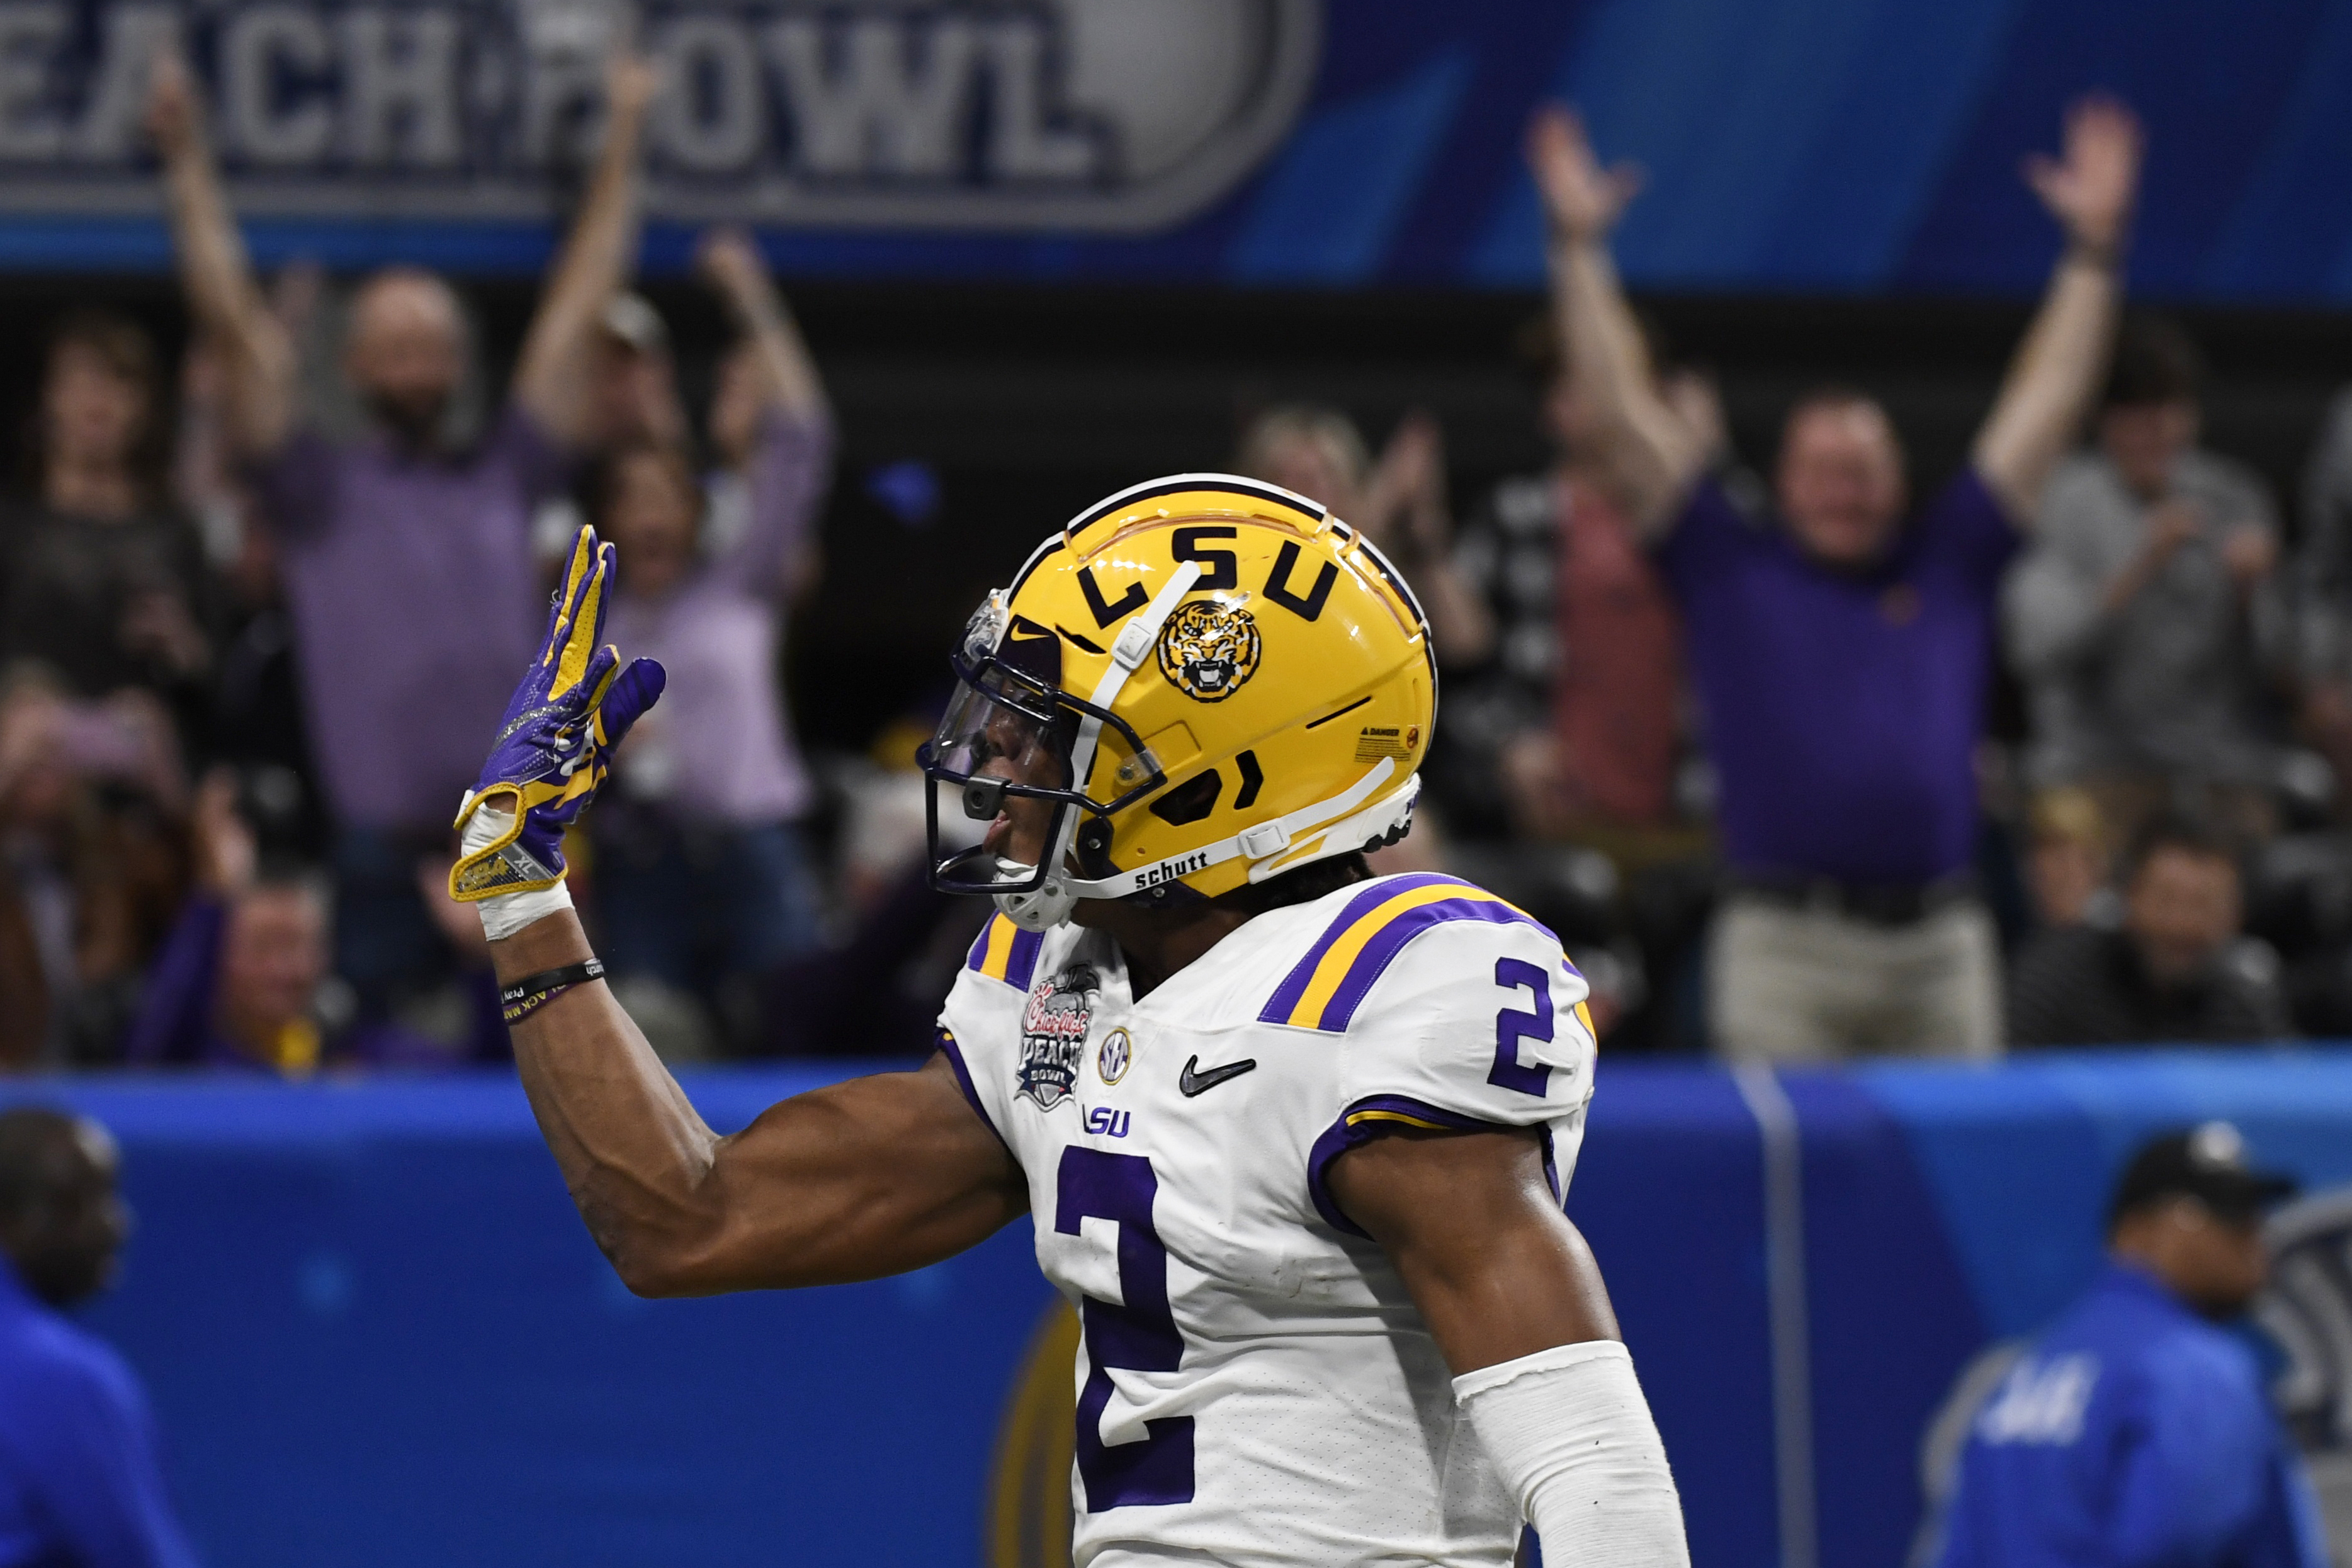 Lsu Clemson Game 2020 >> College Football National Championship 2020 How To Buy